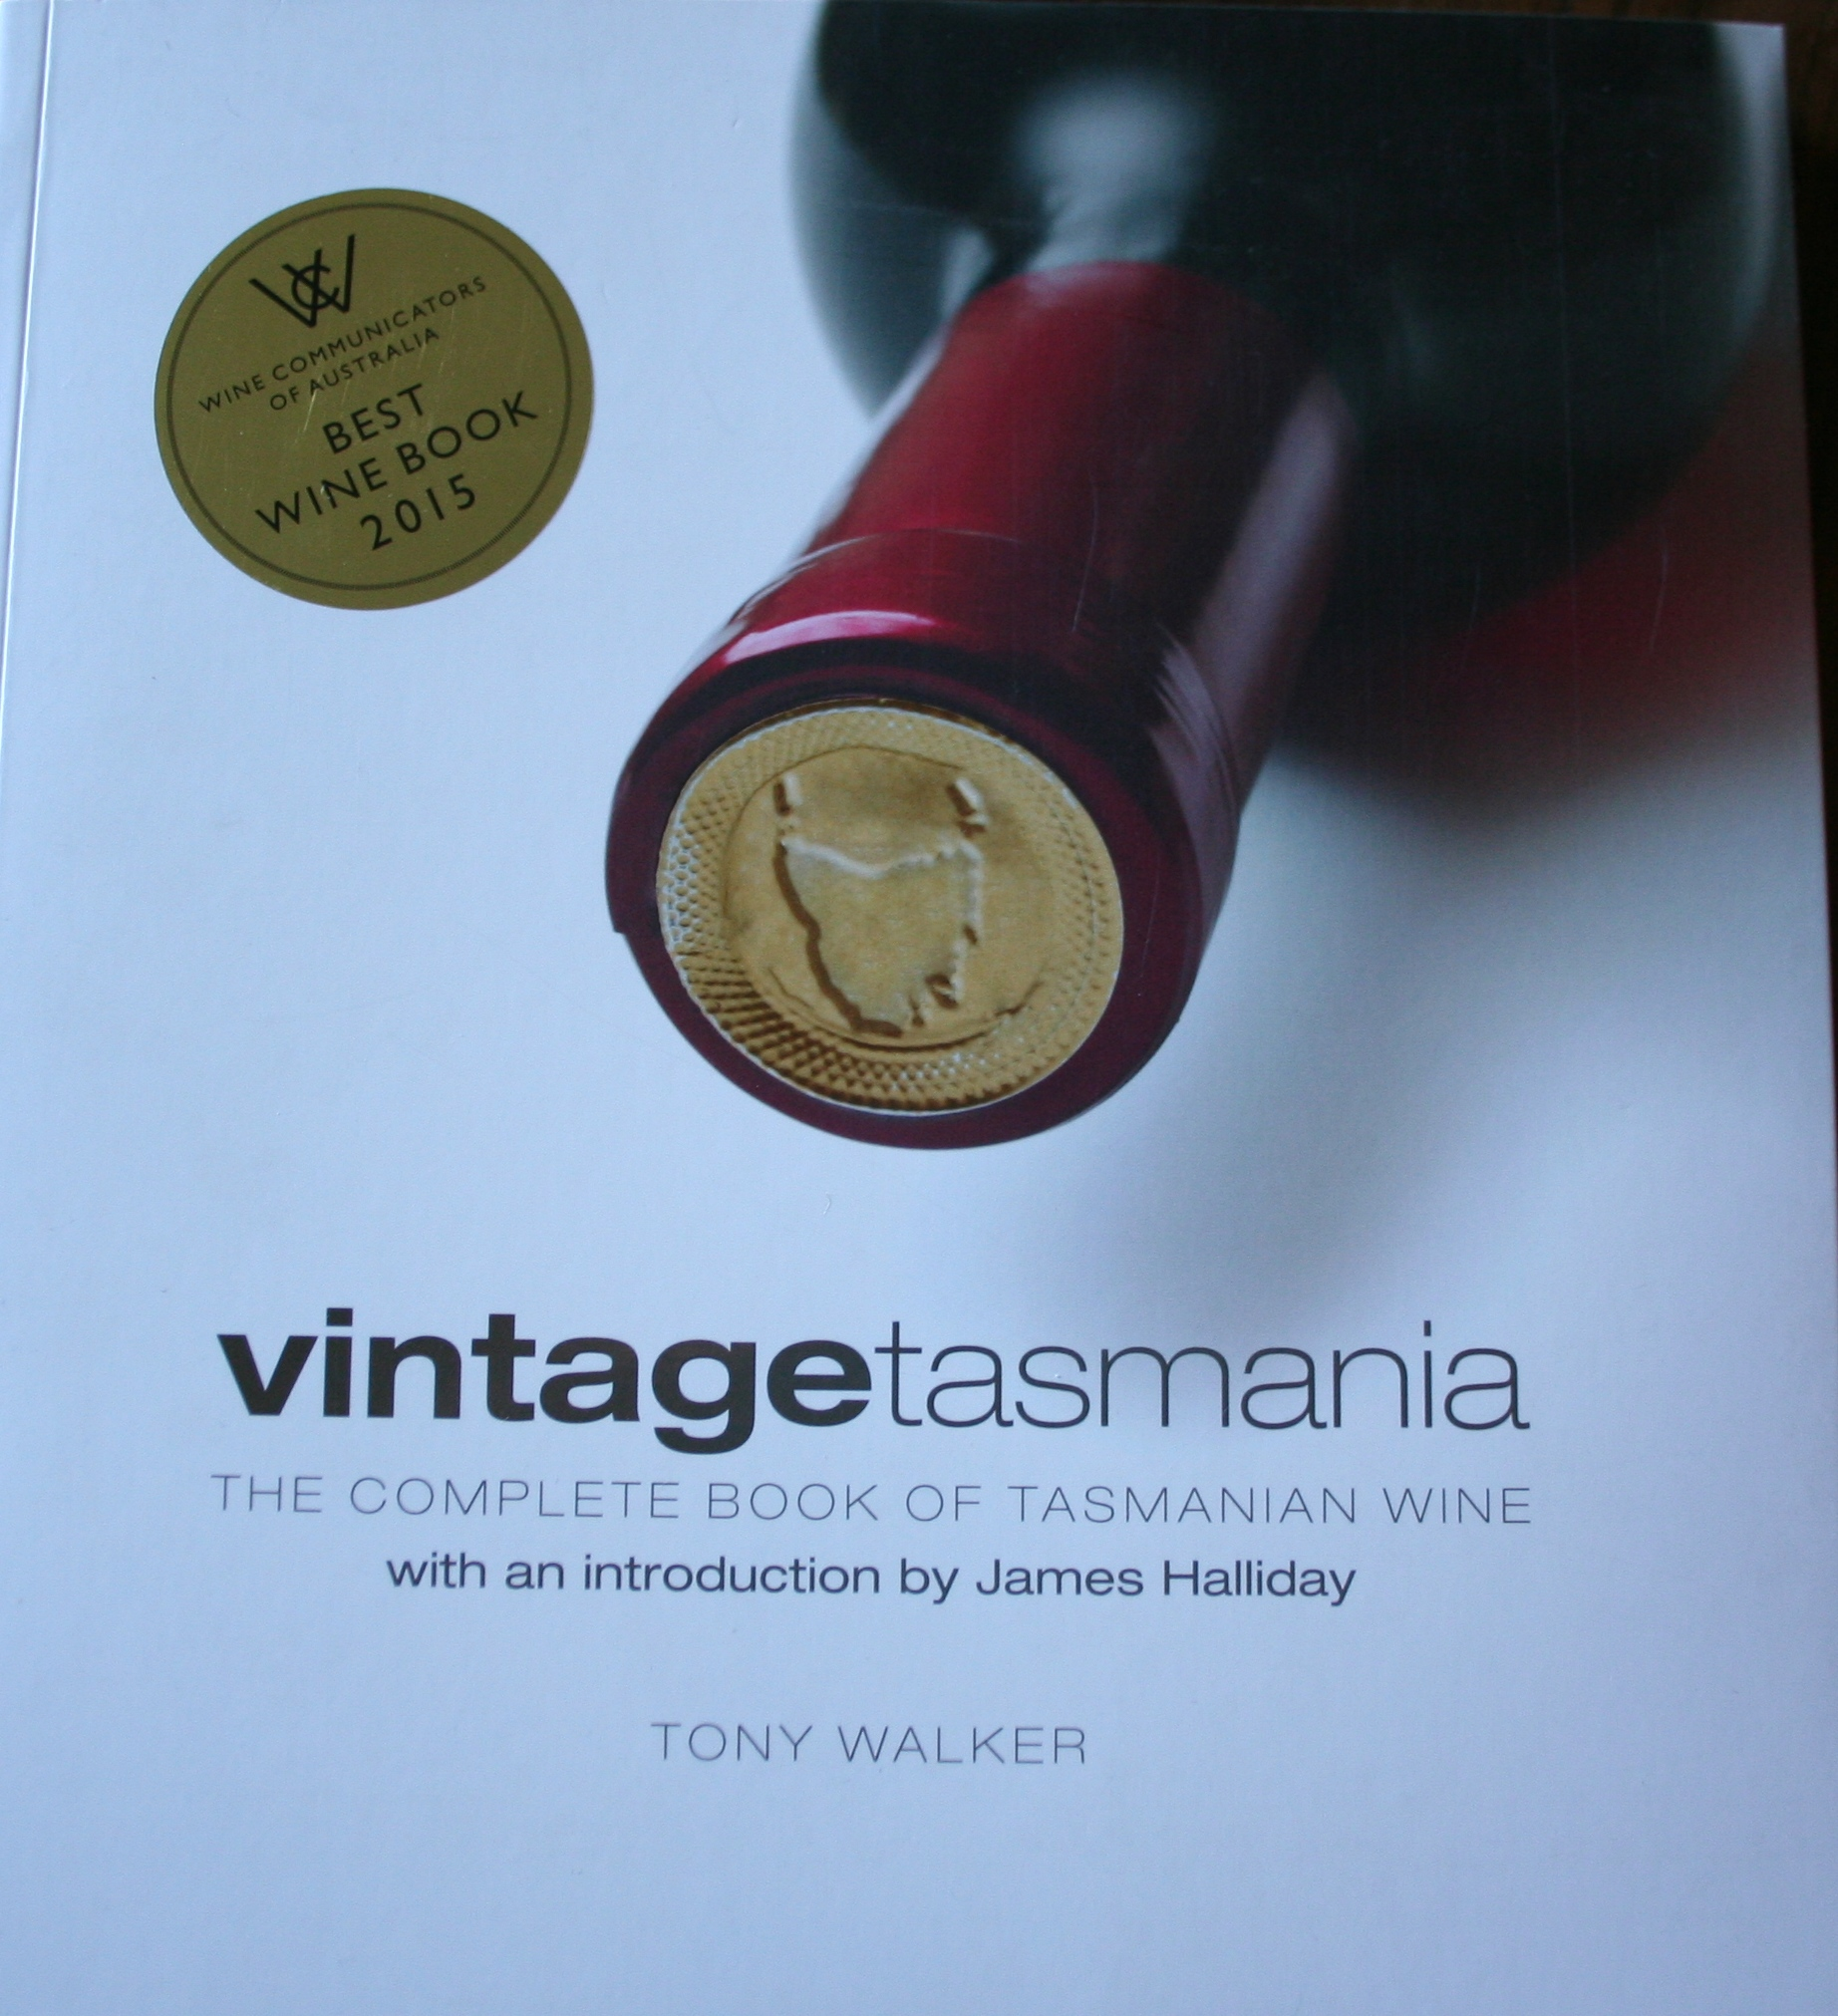 Vintage Tasmania - the Complete Book of Tasmanian Wine